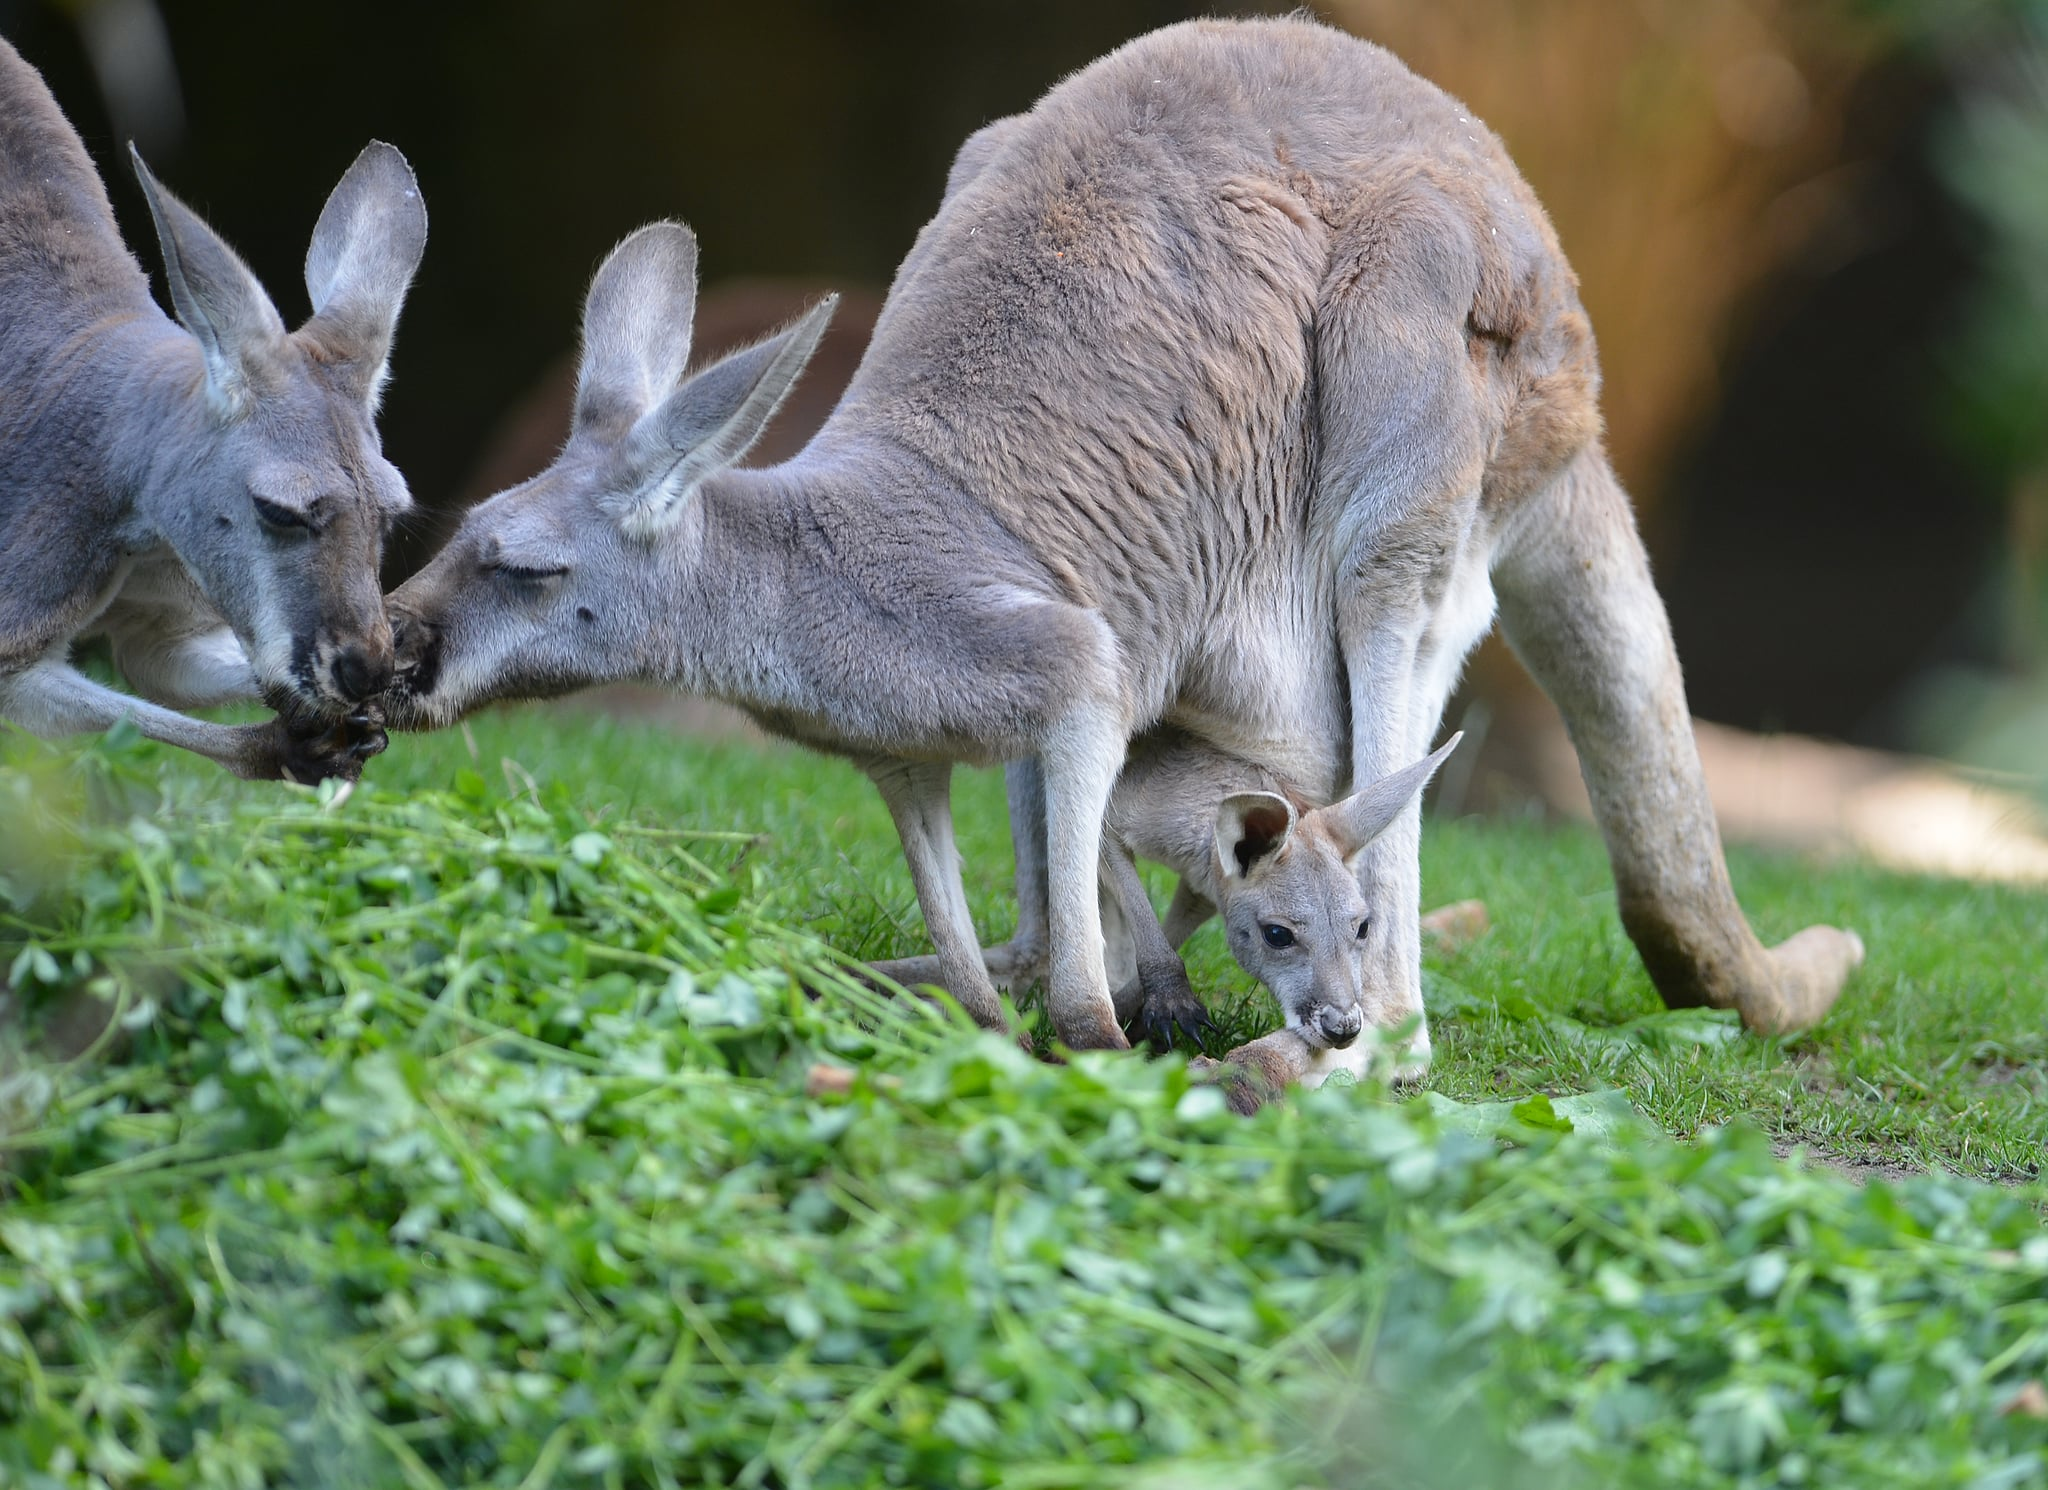 Boo! A joey pokes his head out of mom's pouch to score a bite.